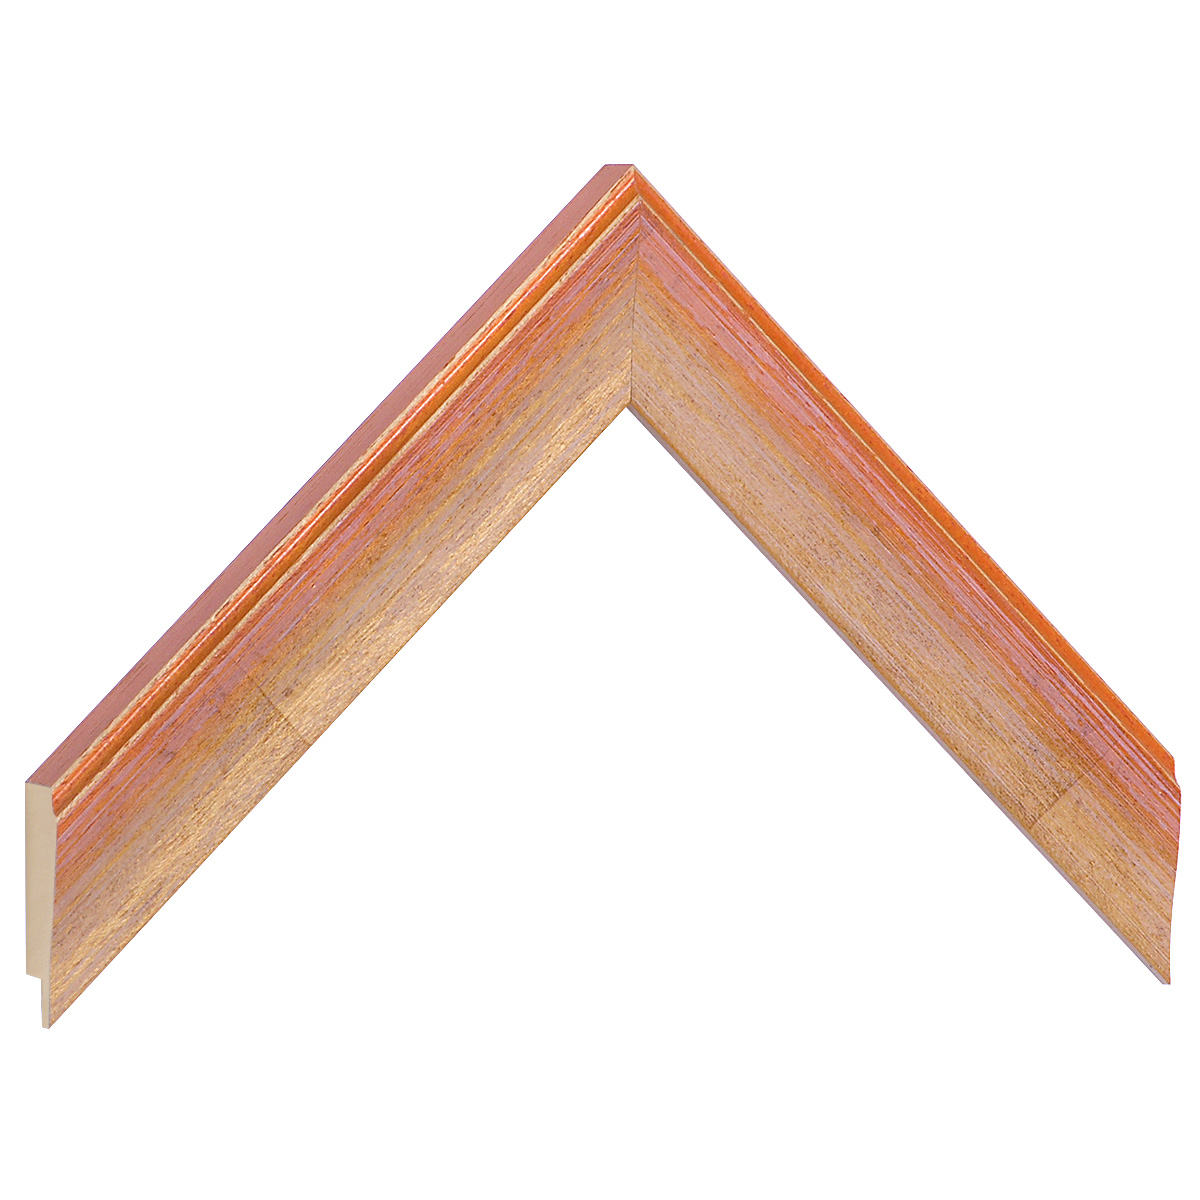 Moulding ayous 30mm - orange colour streaked